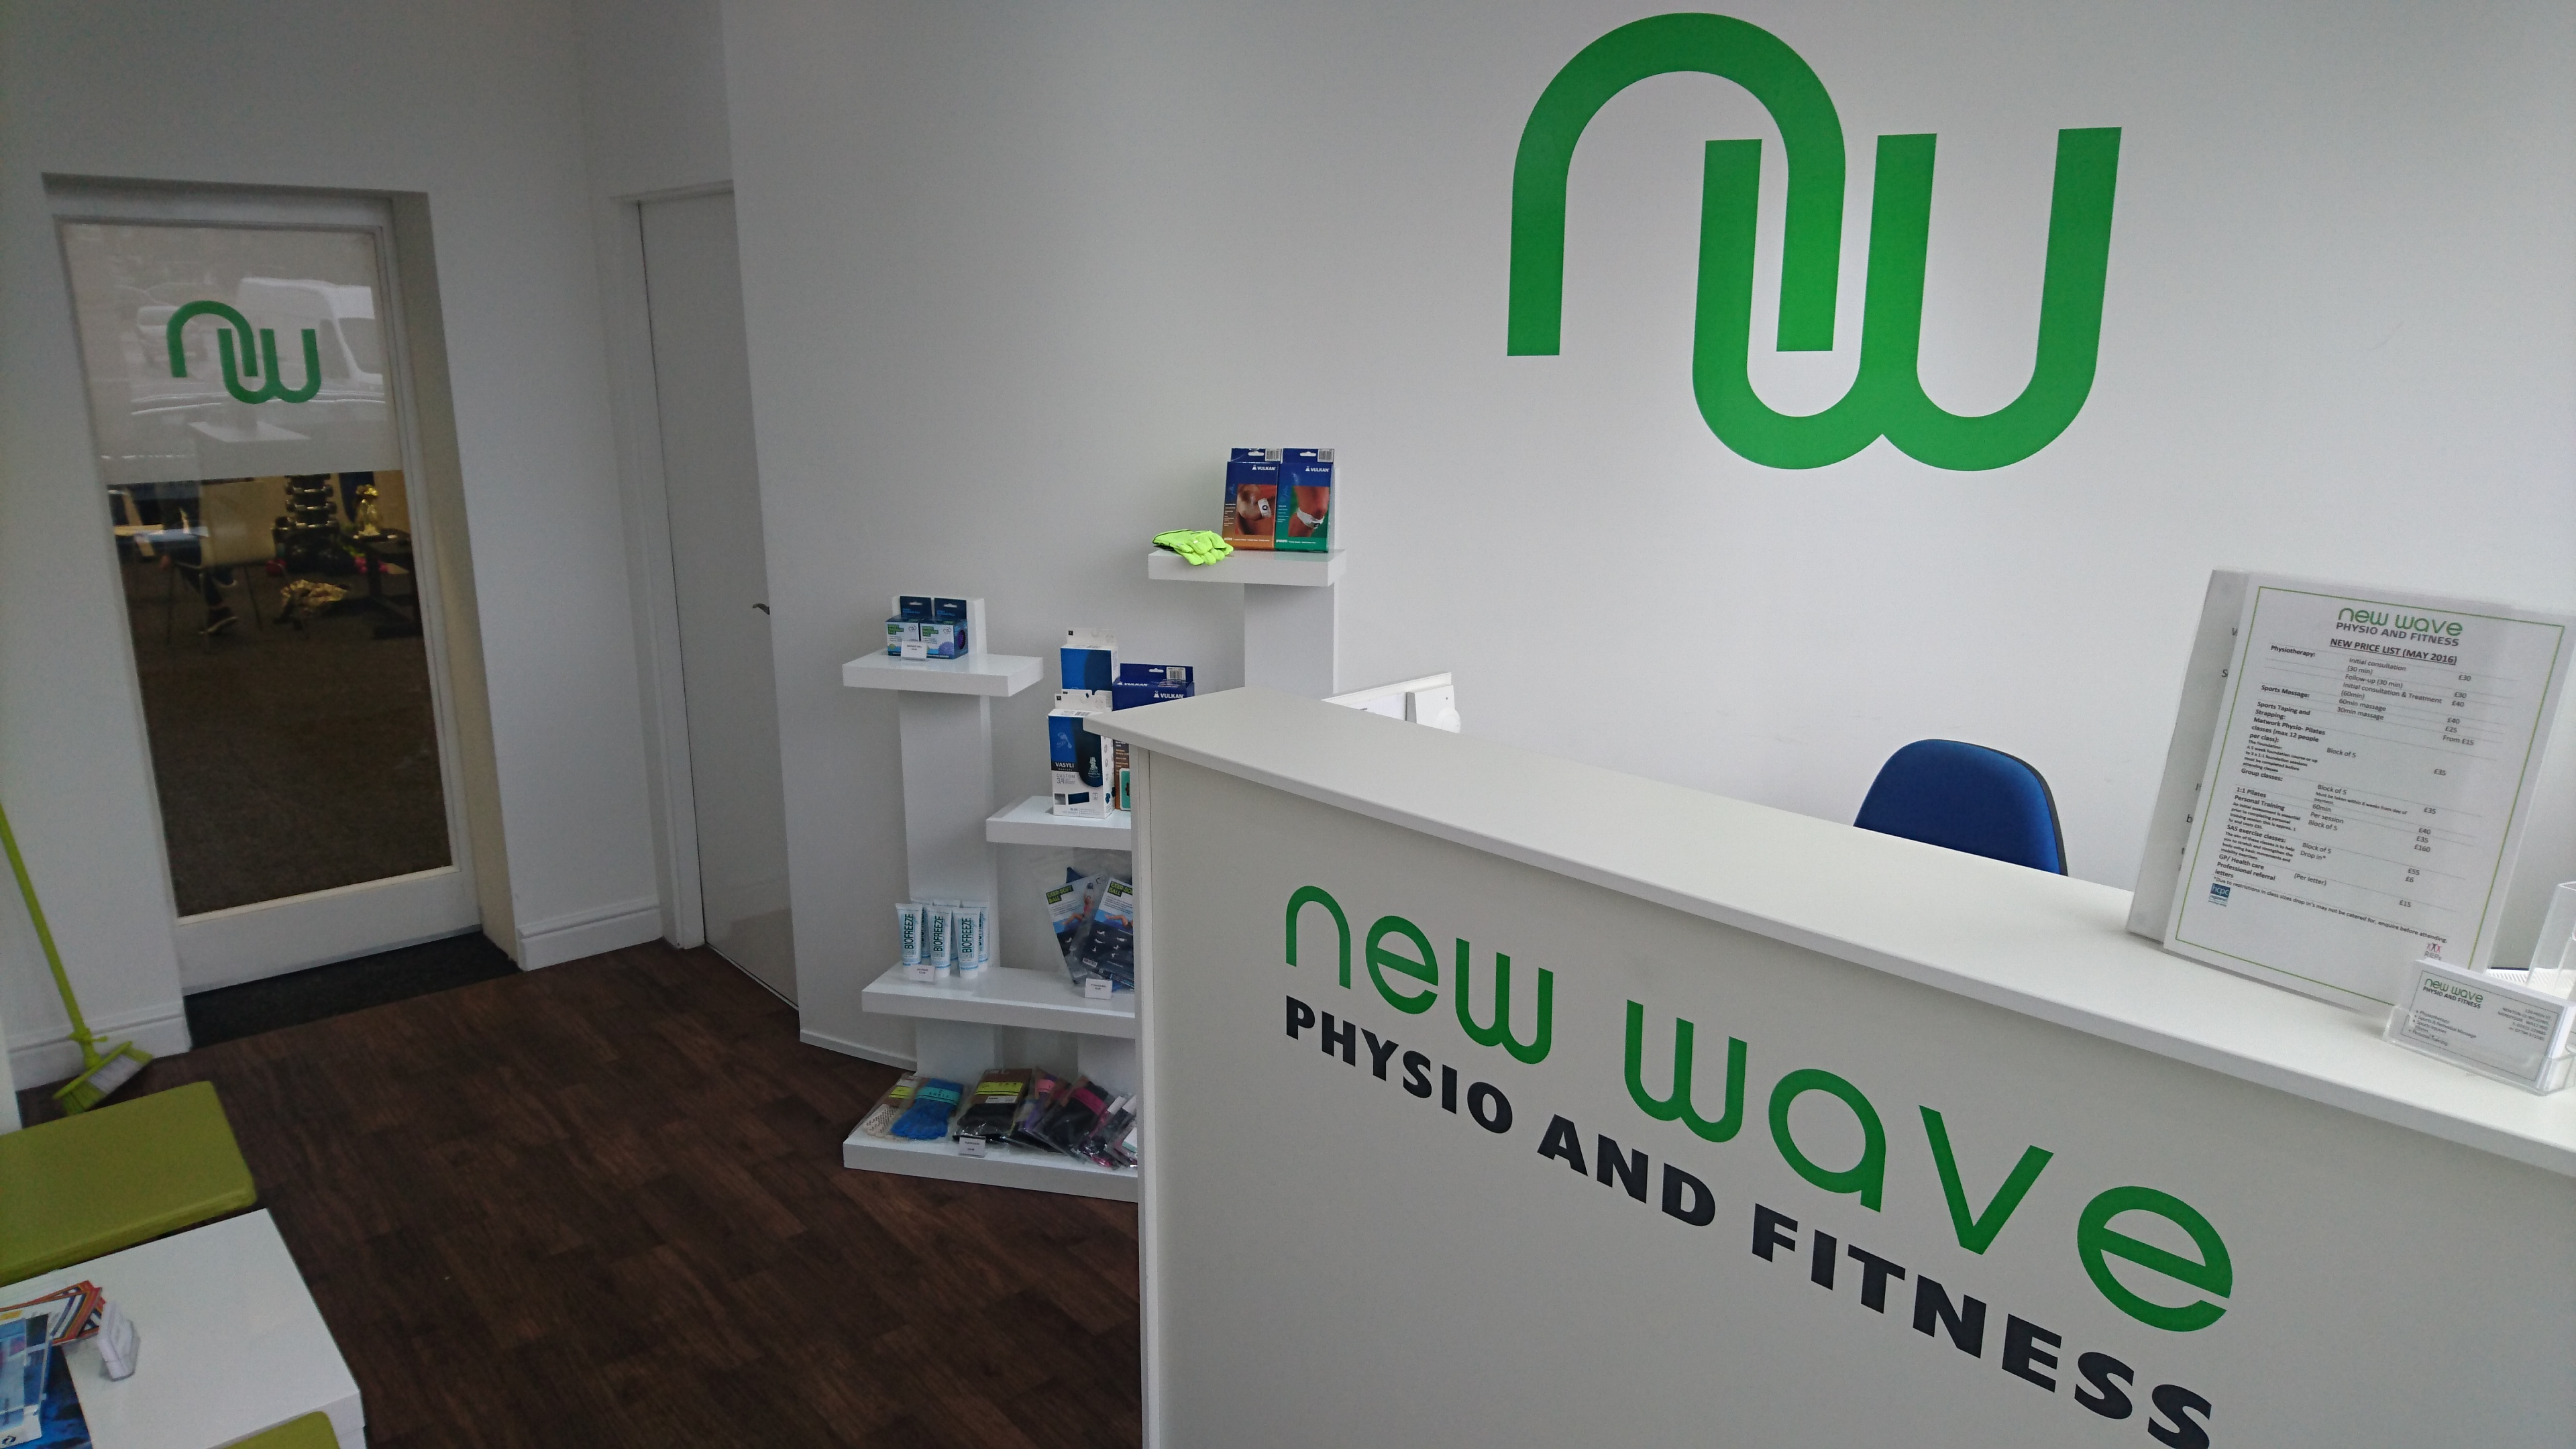 New Wave Physio and Fitness